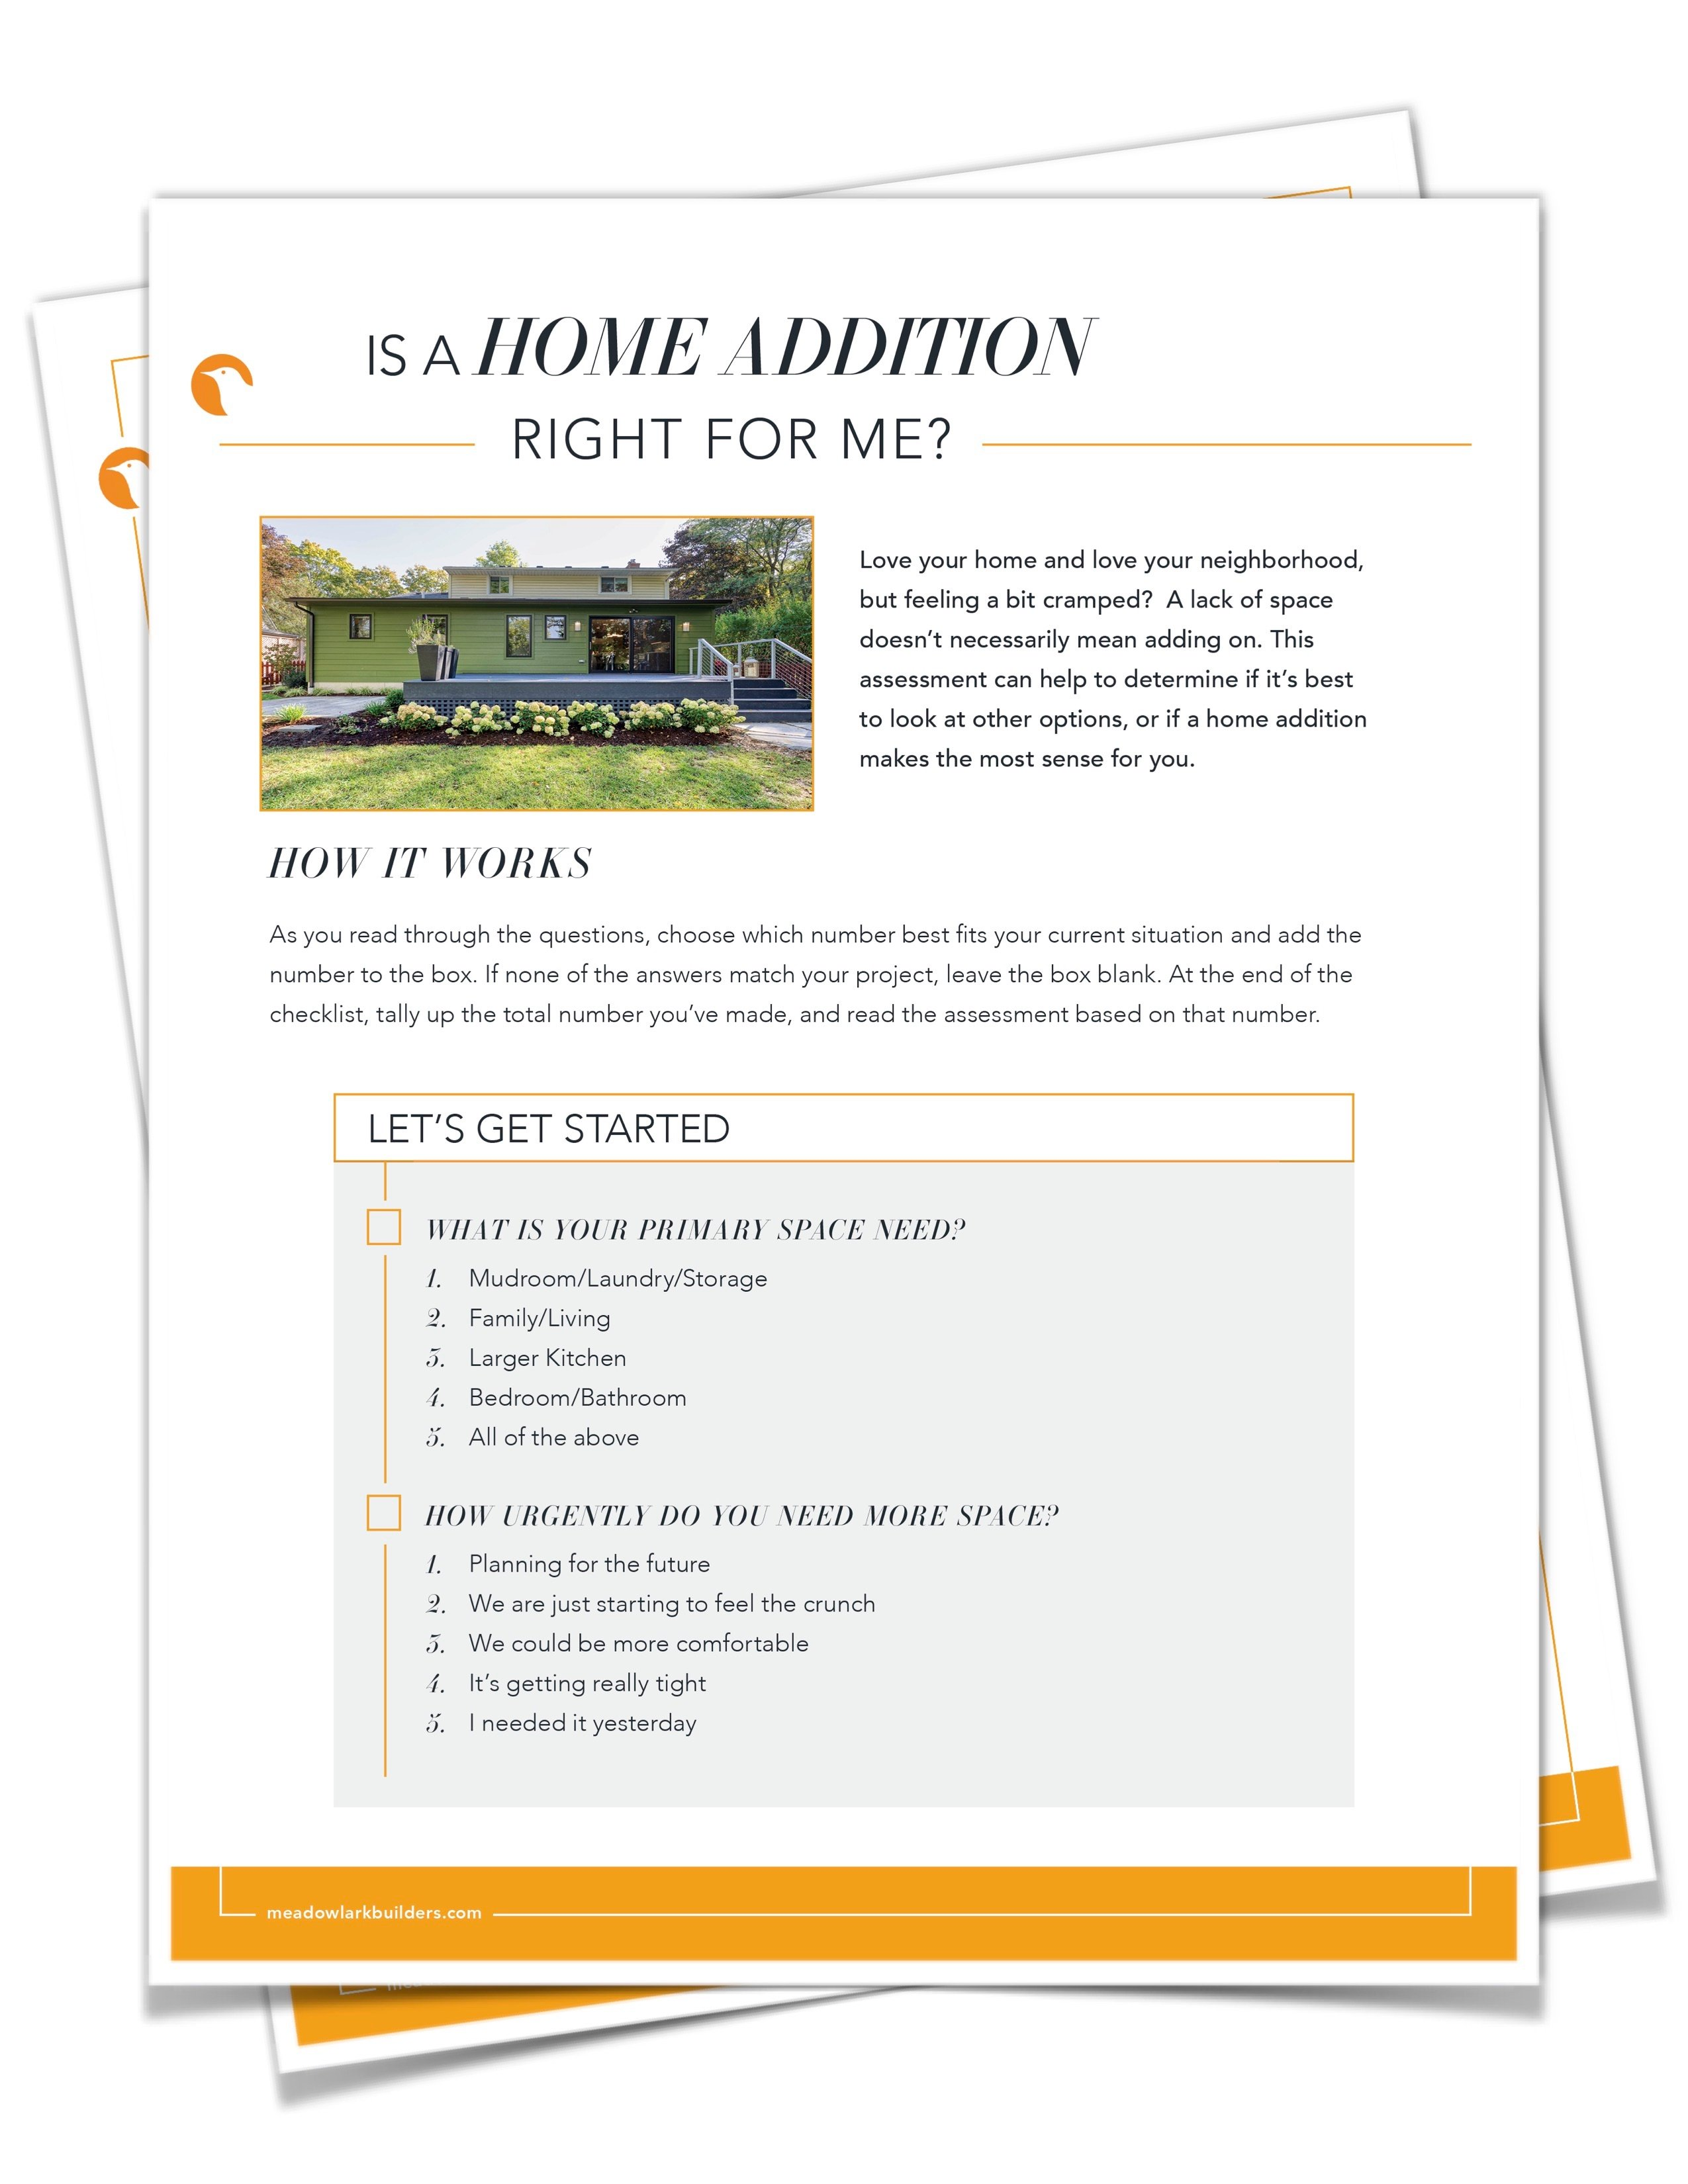 Addition co landing page graphic cropped